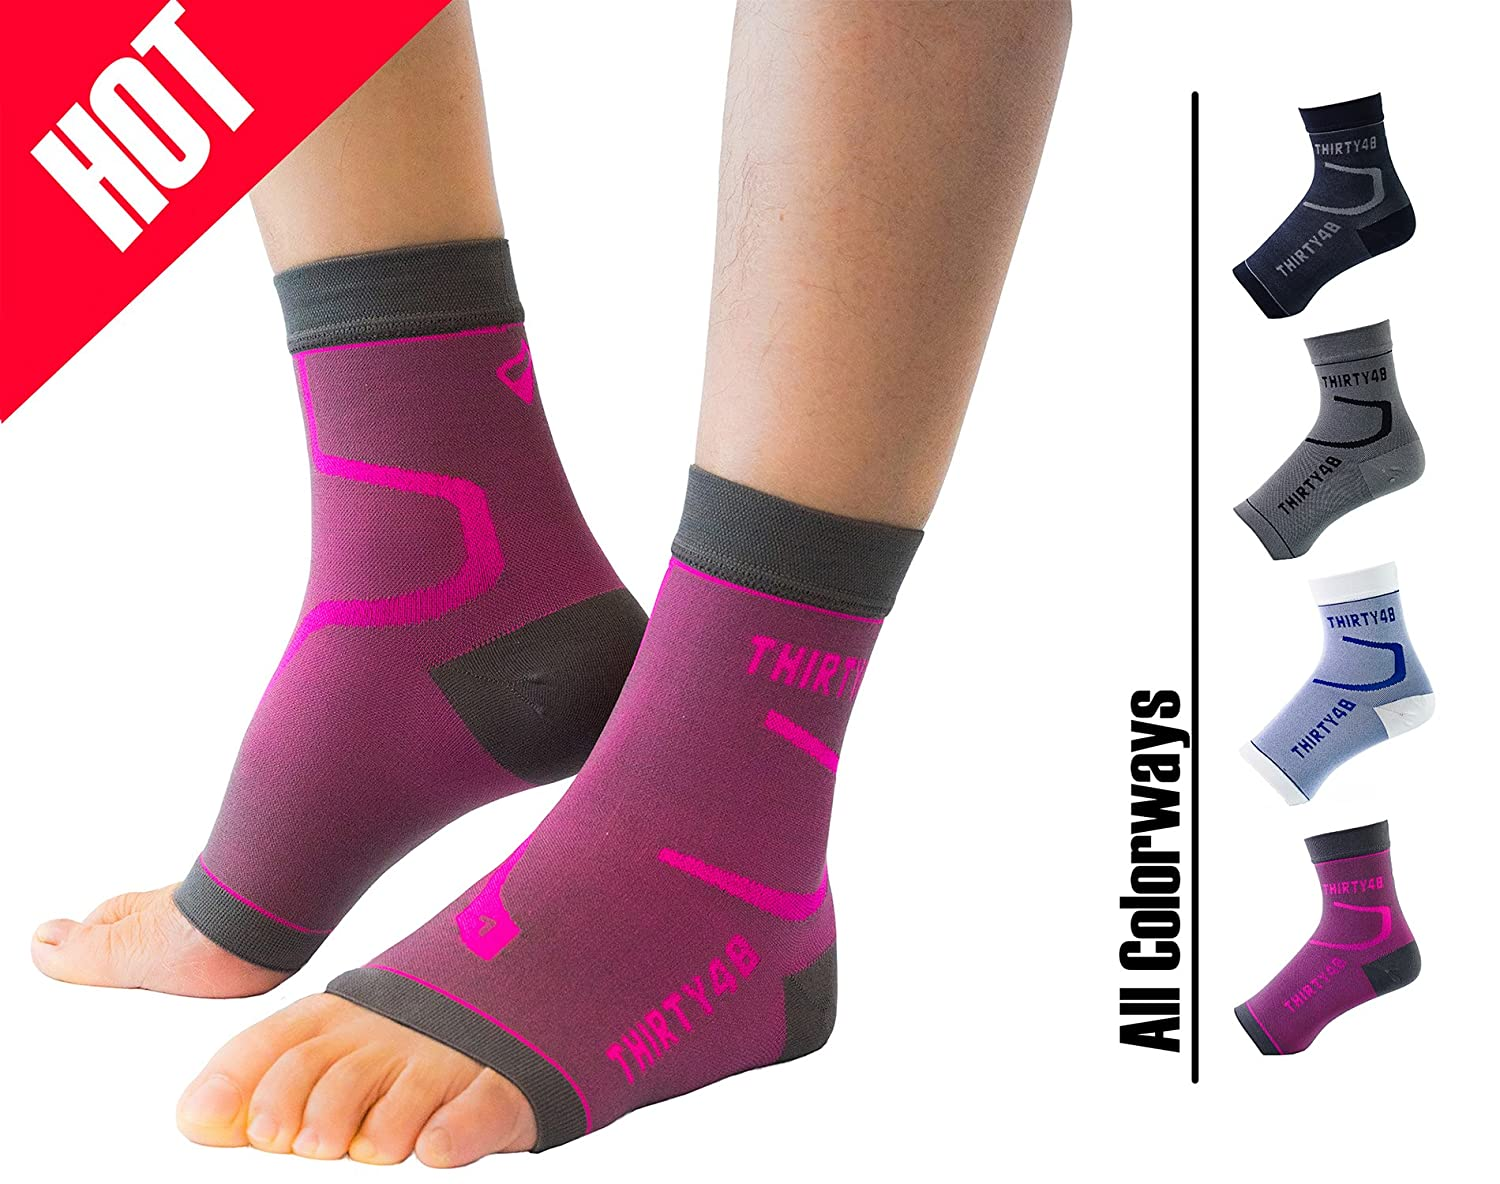 Thirty48 Plantar Fasciitis Compression Socks(1 or 2 Pairs), 20-30 mmHg Foot Compression Sleeves for Ankle/Heel Support, Increase Blood Circulation, Relieve Arch Pain, Reduce Foot Swelling Best Compression Socks